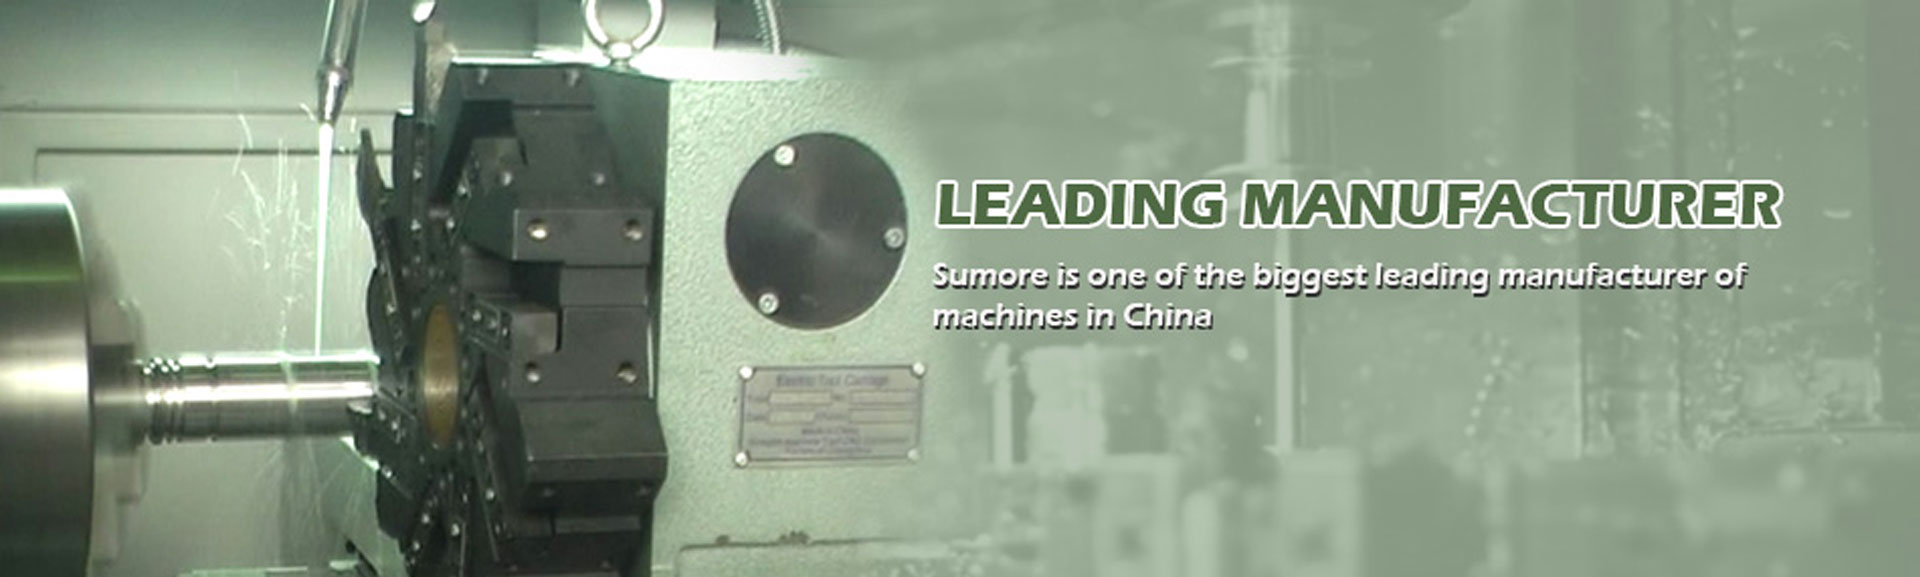 SHANGHAI Sumore INDUSTRIAL CO., LTD. Bnanner3